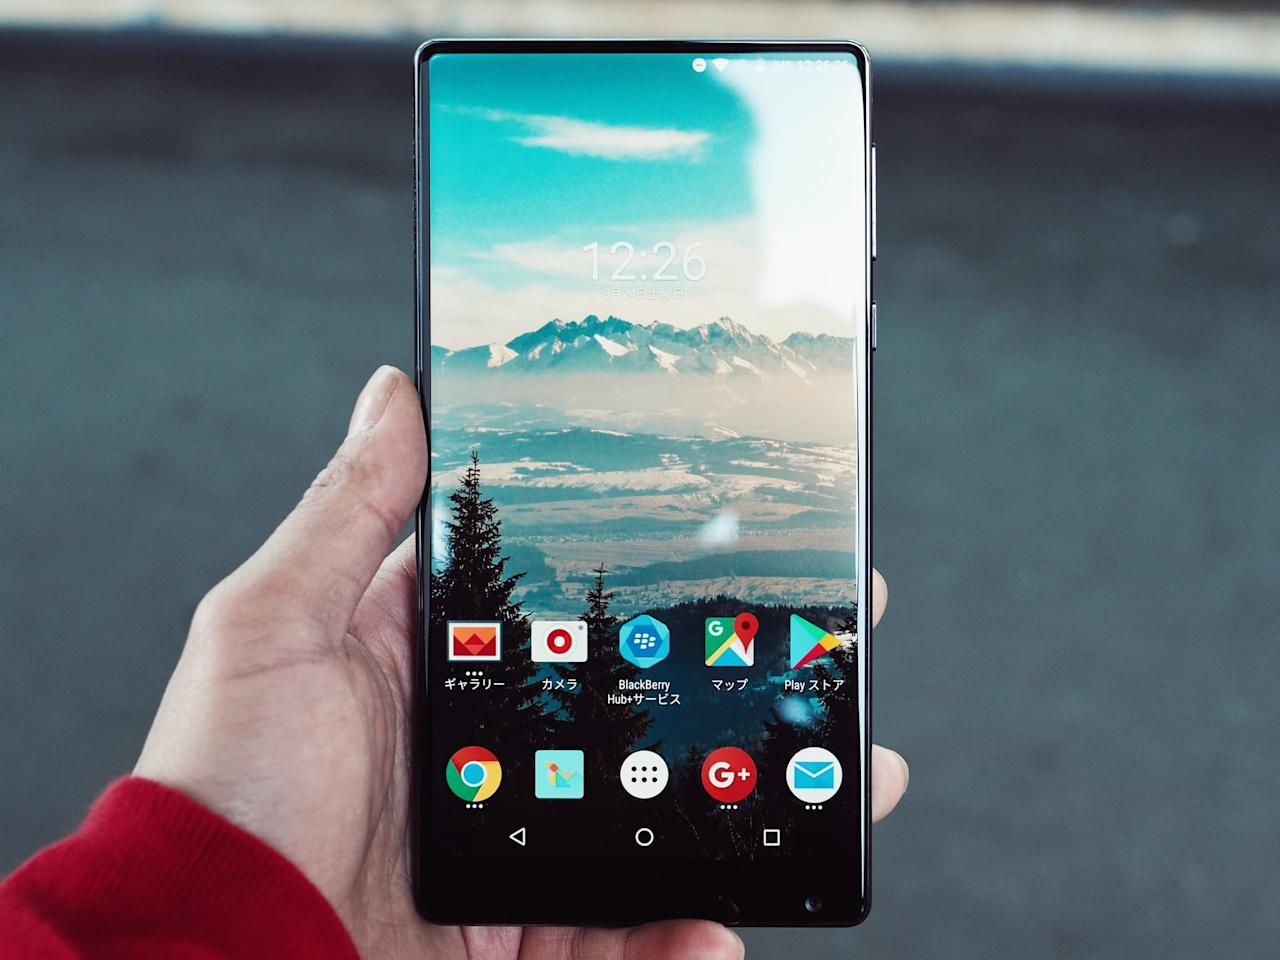 <p>Perhaps the most obvious difference between the iPhone and Android is the one you see first: the style. The interface, apps, and emoji all look different, with the iPhone generally considered to have a sleeker and more streamlined aesthetic.</p>